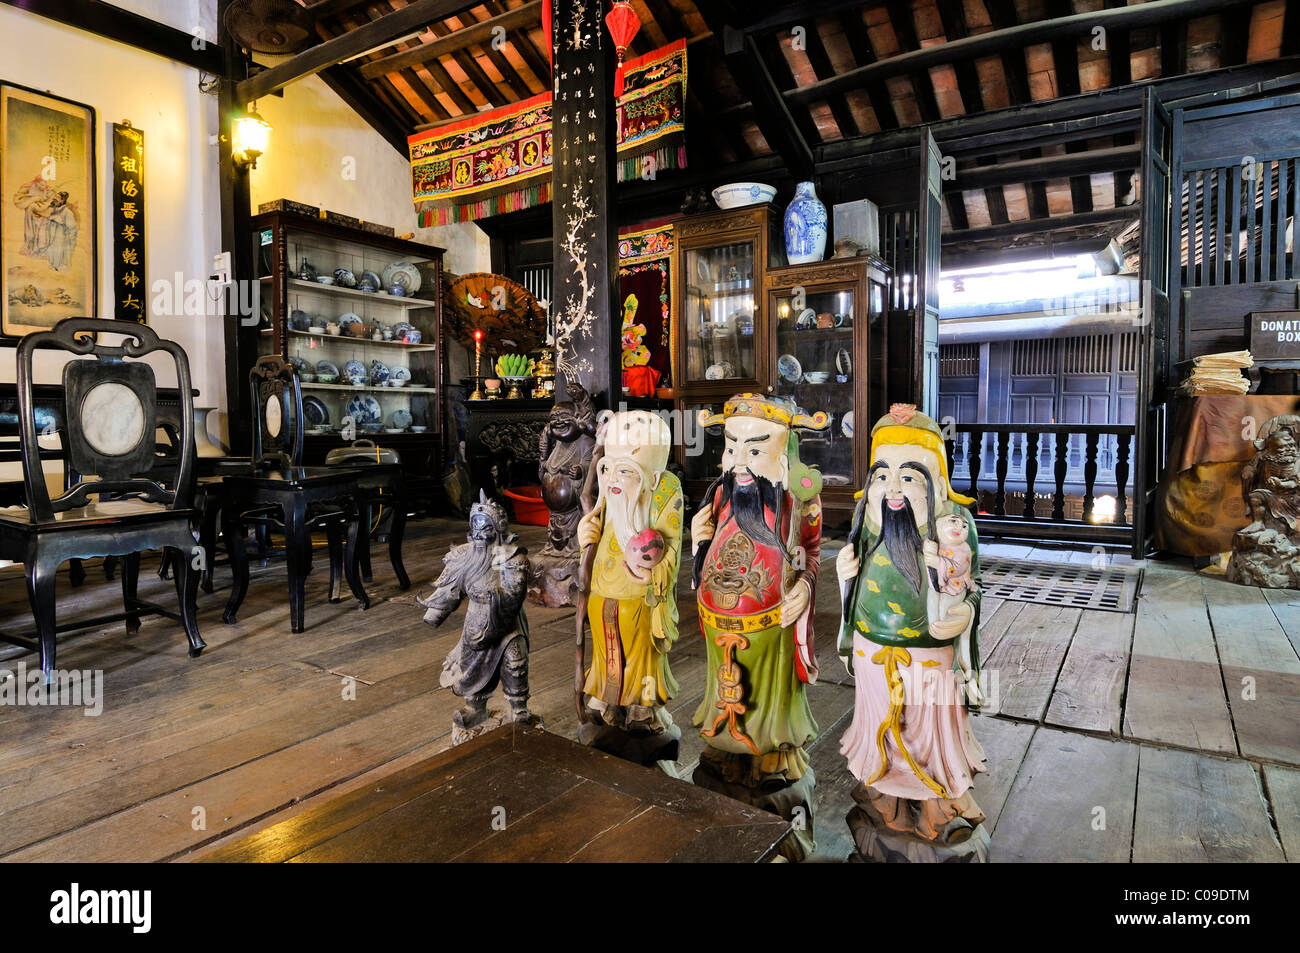 Chinese deities in the Phung Hung House, Hoi An, Vietnam, Southeast Asia - Stock Image